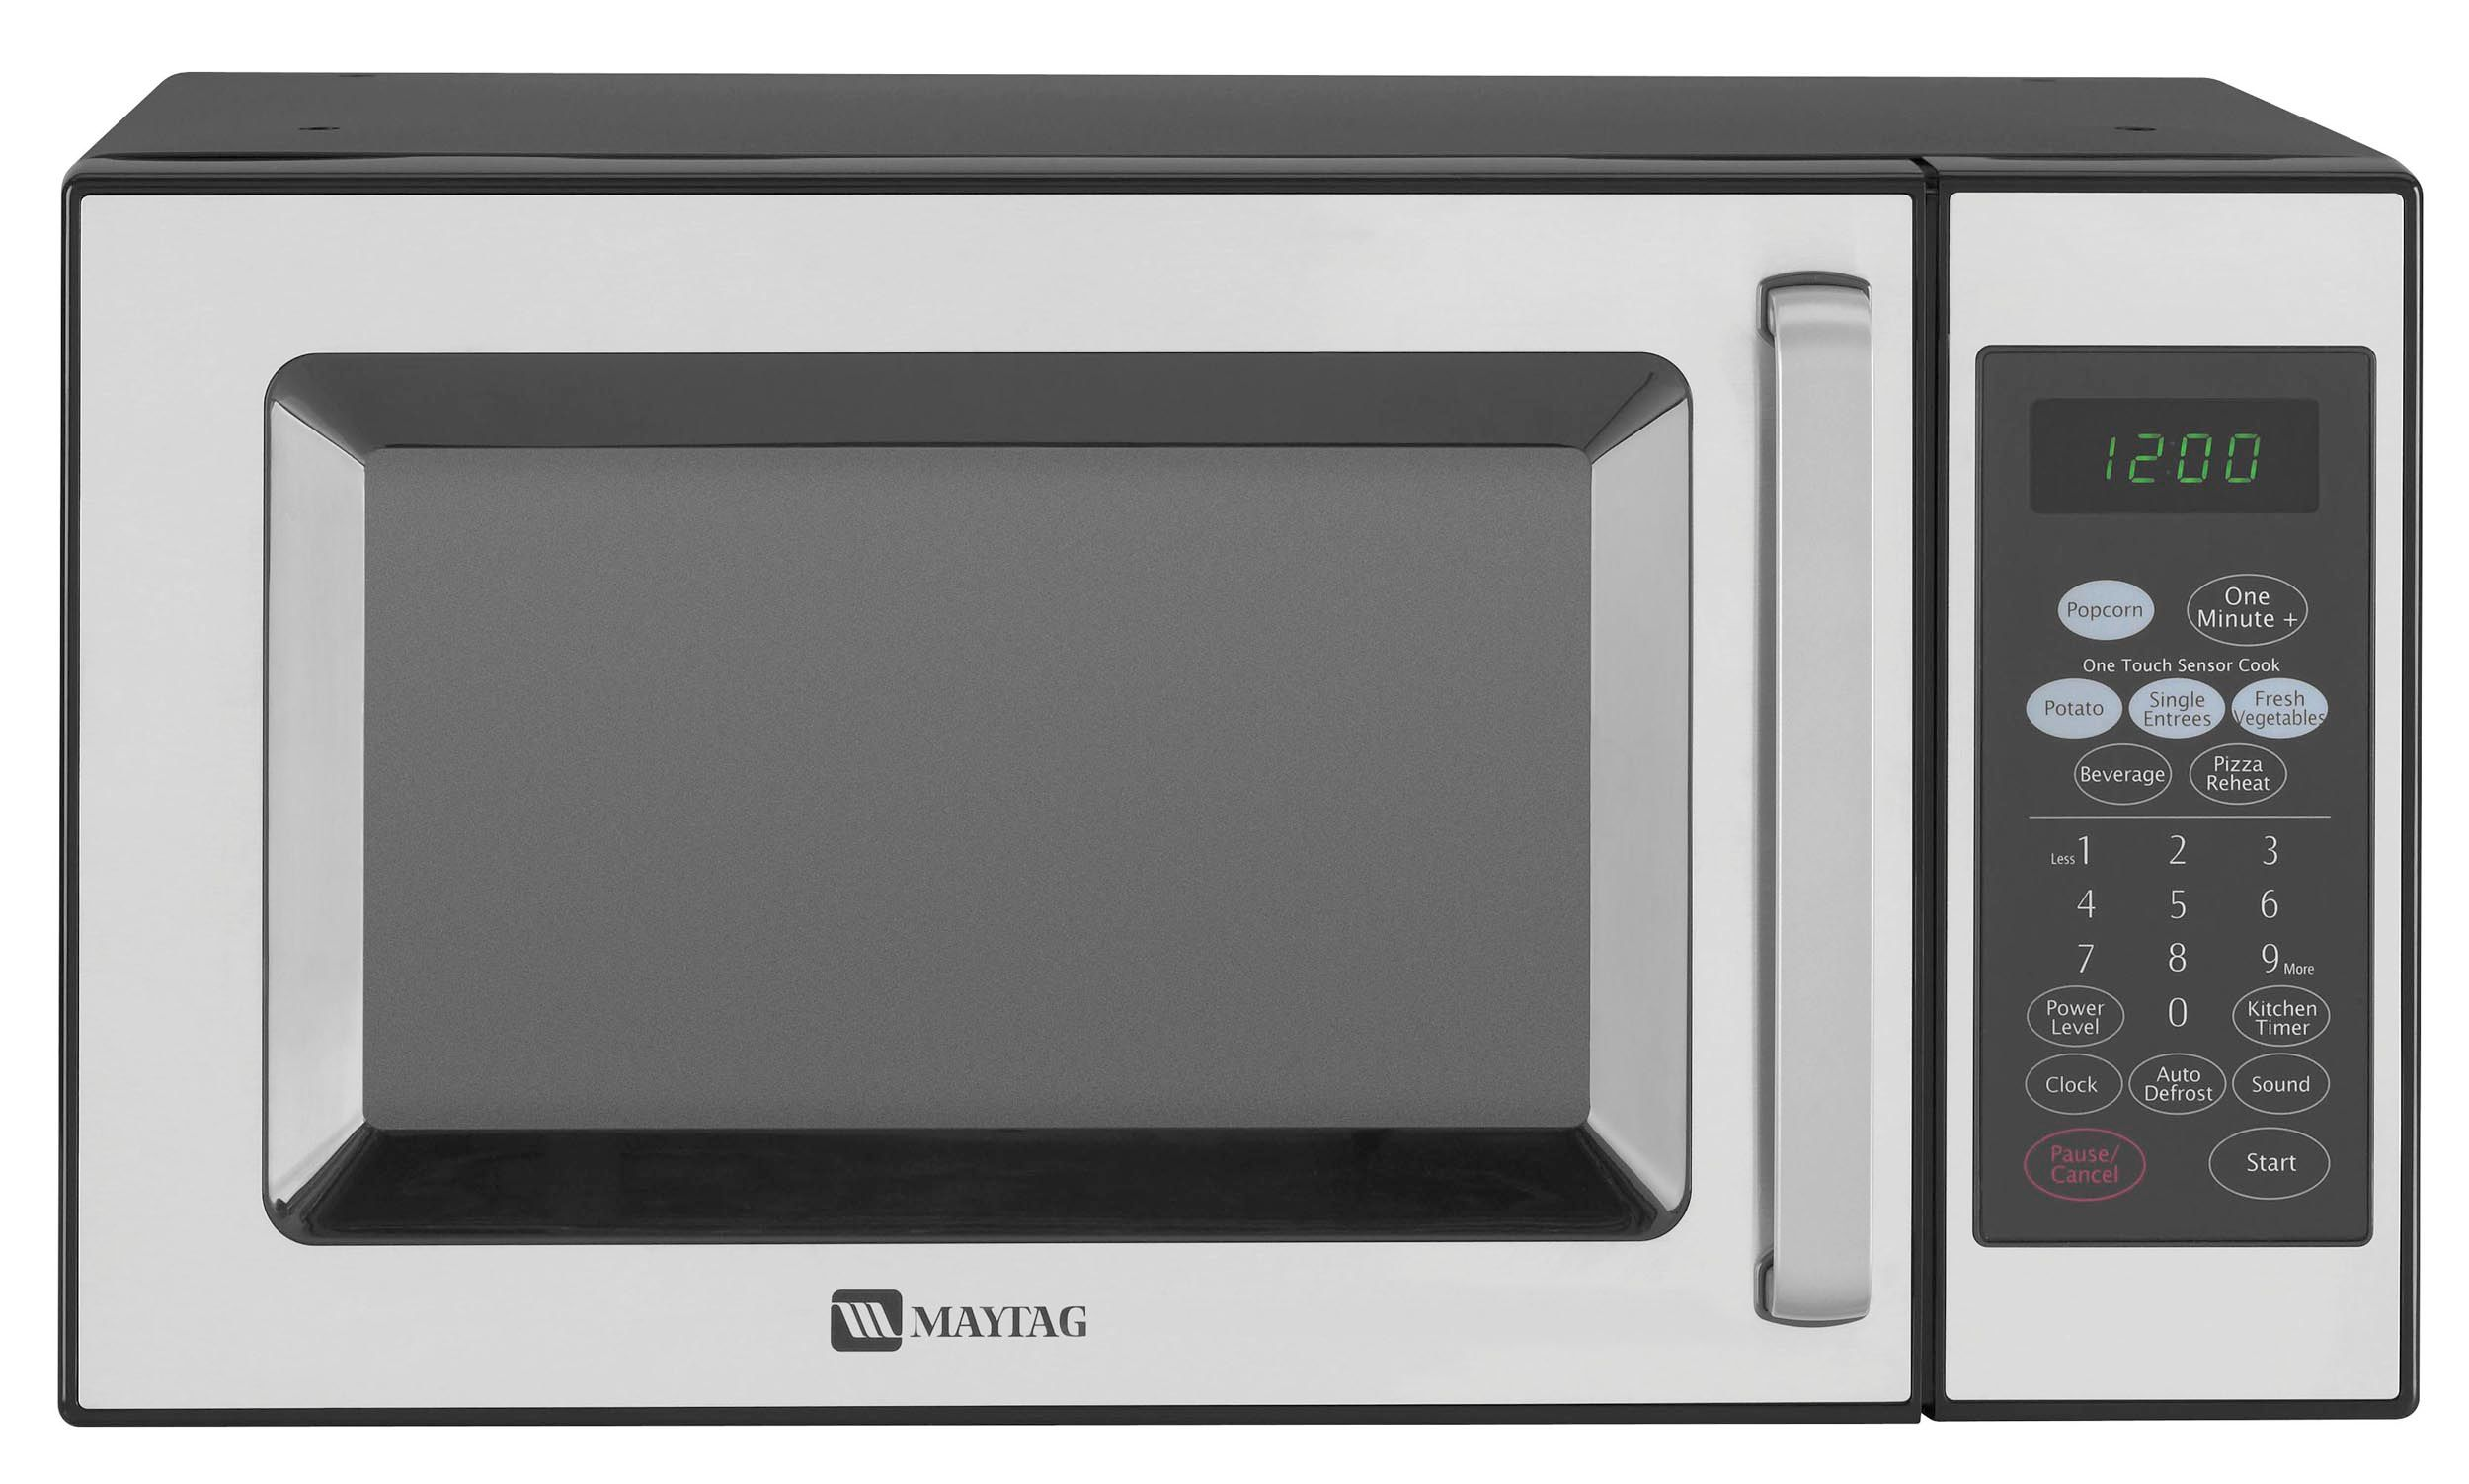 Maytag Mmc5080aas 8 Cu Ft Countertop Microwave American Freight Sears Outlet